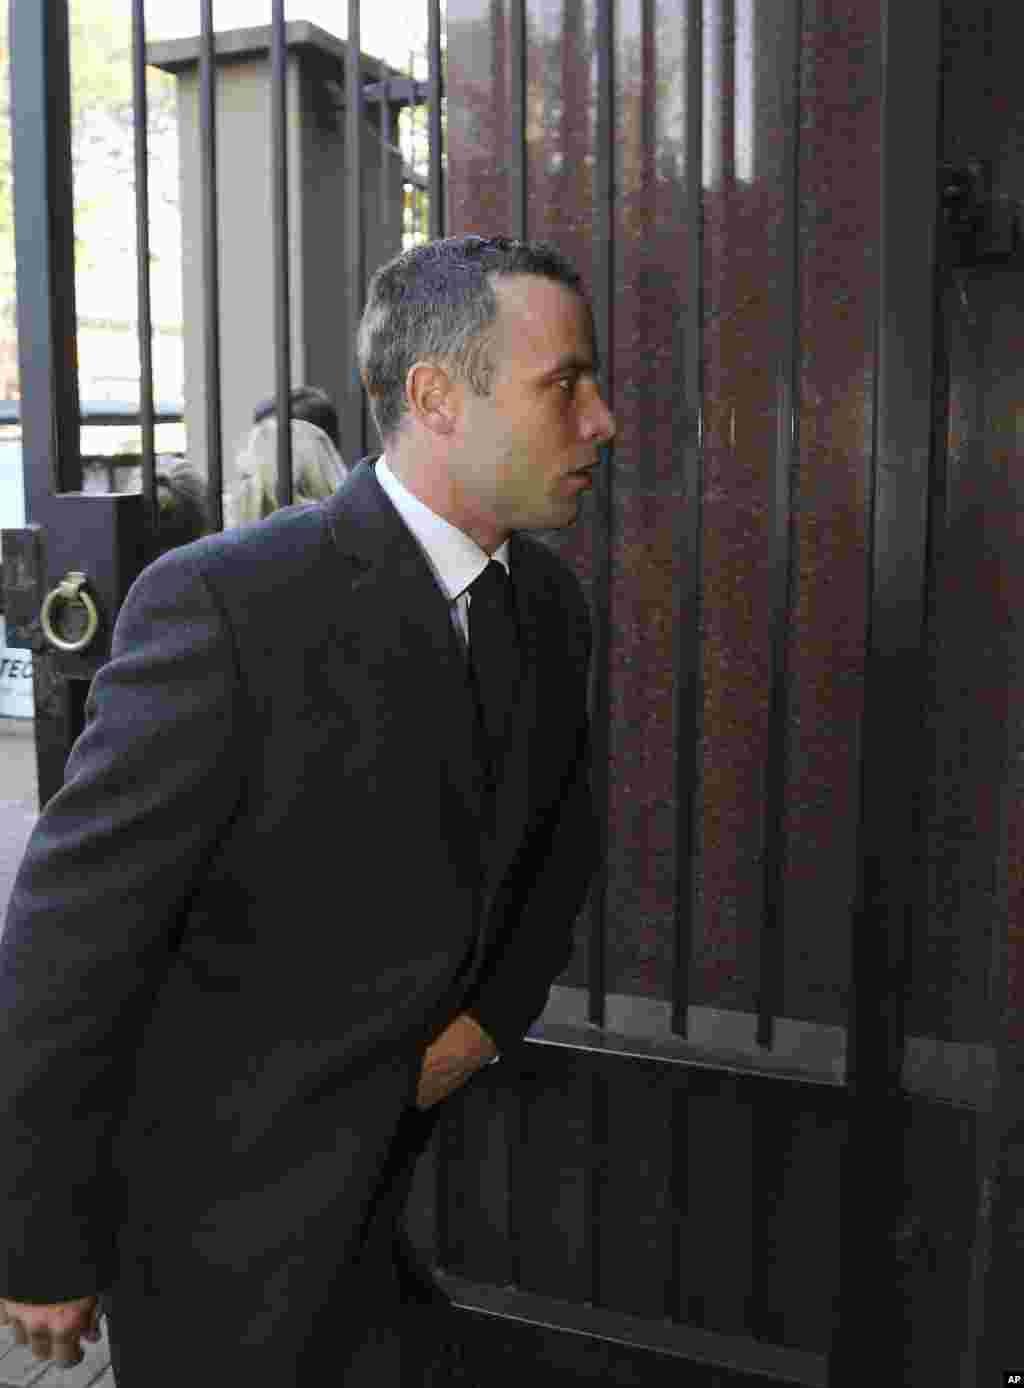 Oscar Pistorius arrives at the high court in Pretoria, South Africa, May 20, 2014.